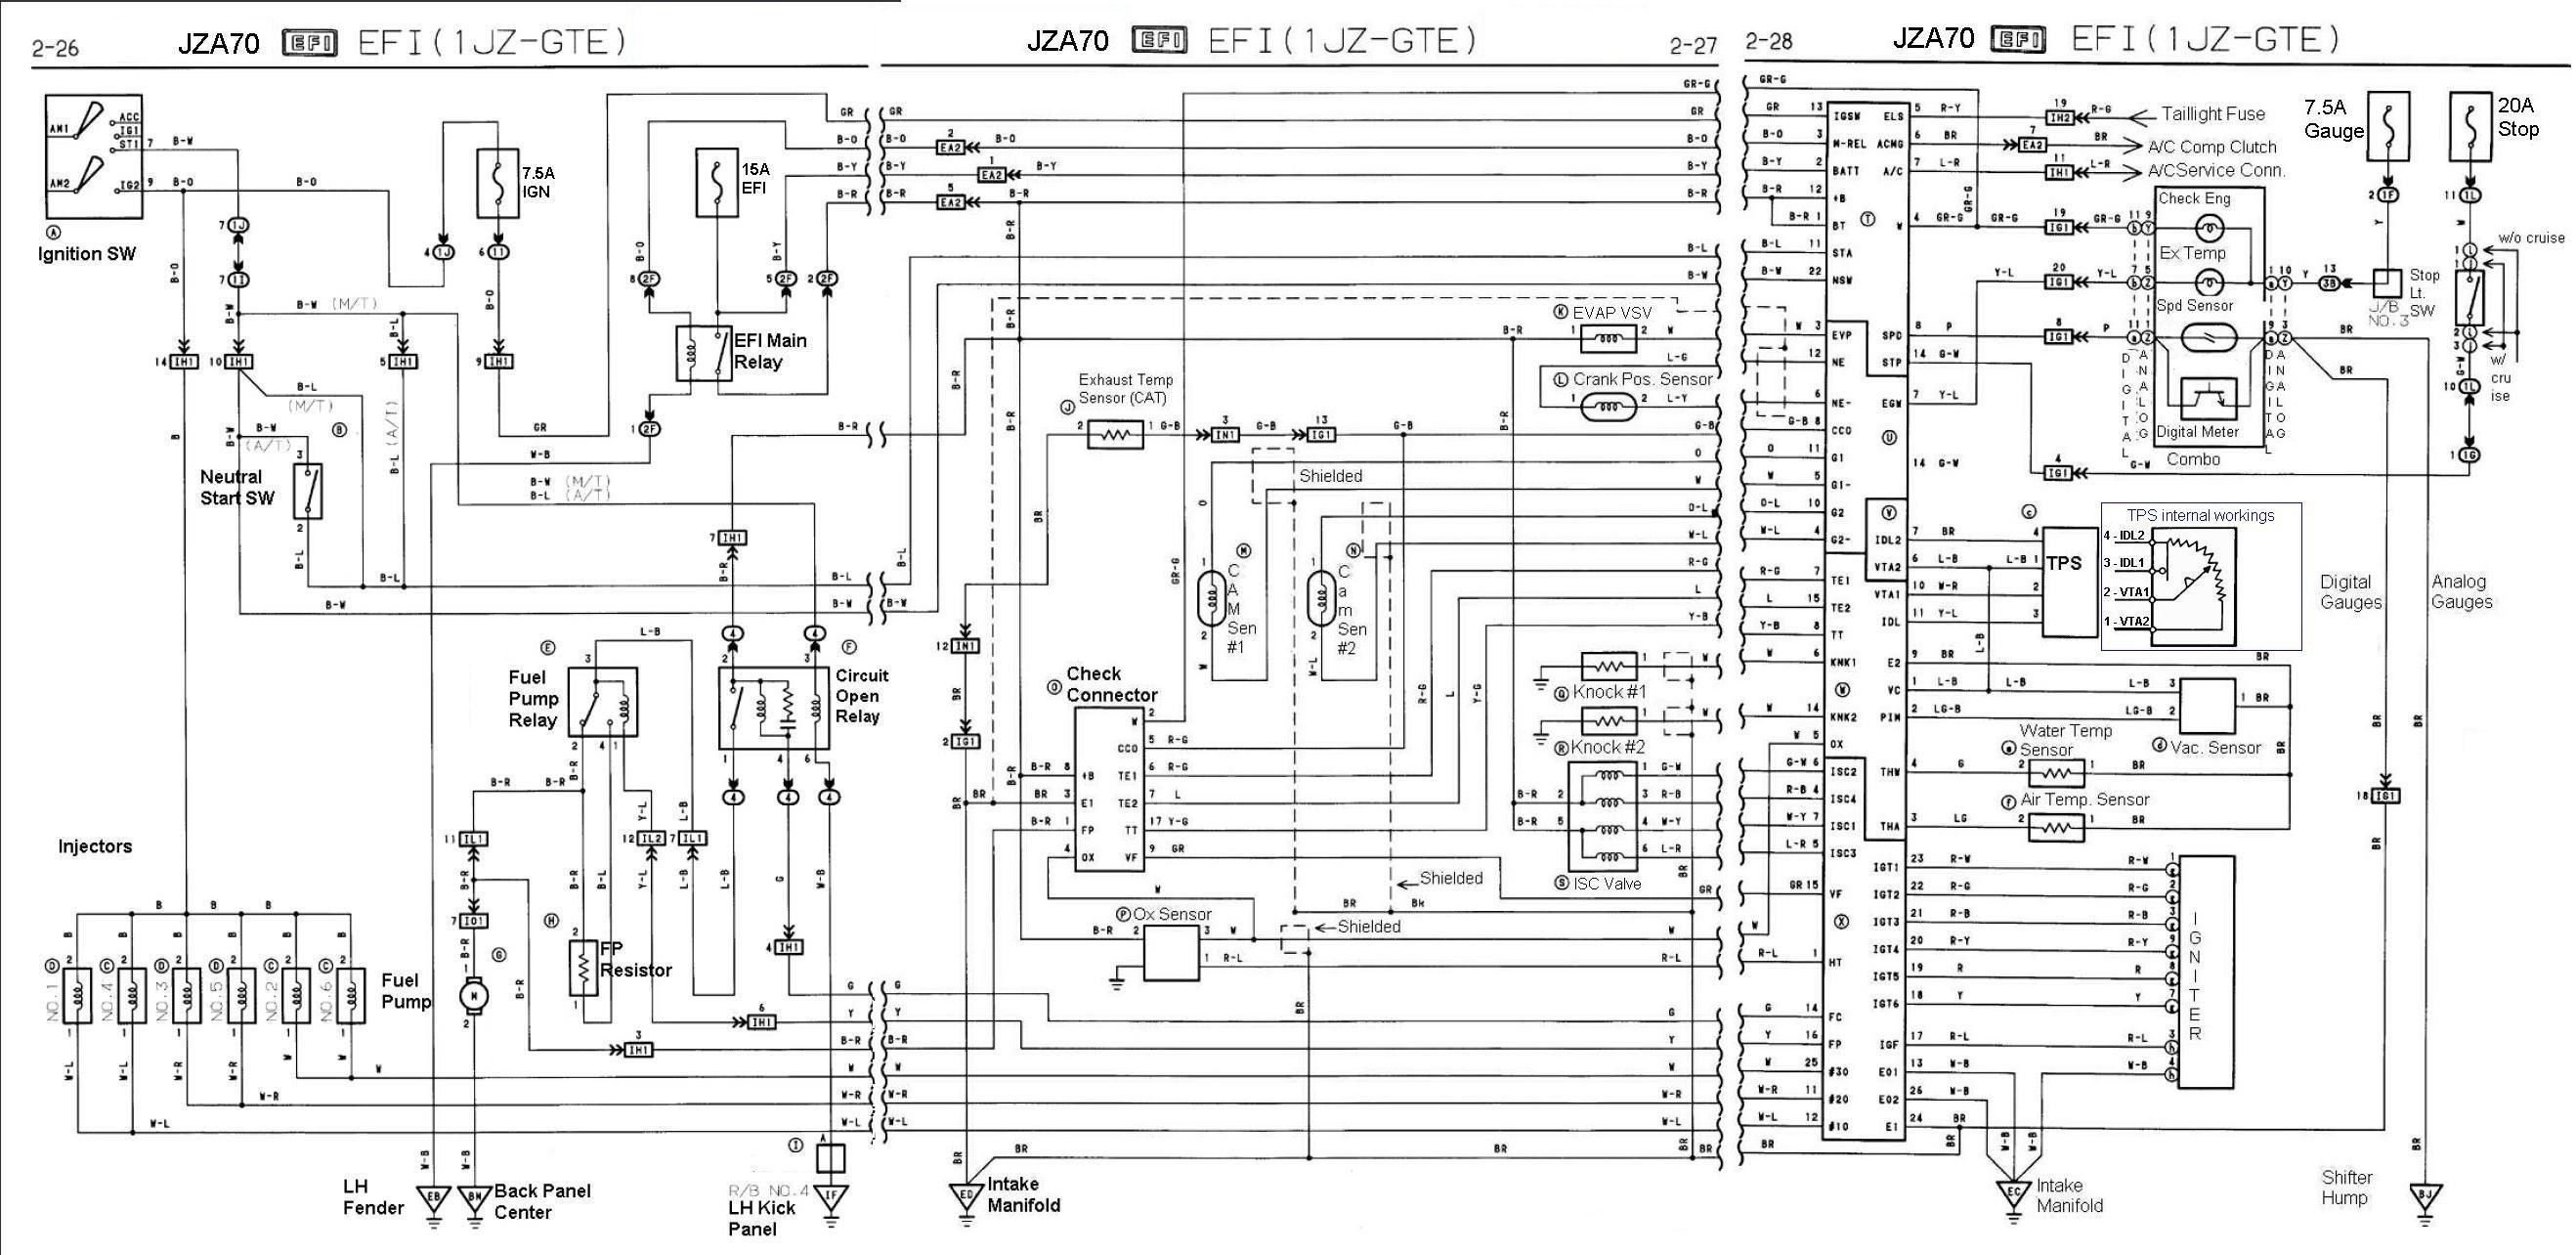 New Bmw E46 Pdc Wiring Diagram Diagram Diagramtemplate Diagramsample Bmw E46 Diagram Electrical Wiring Diagram